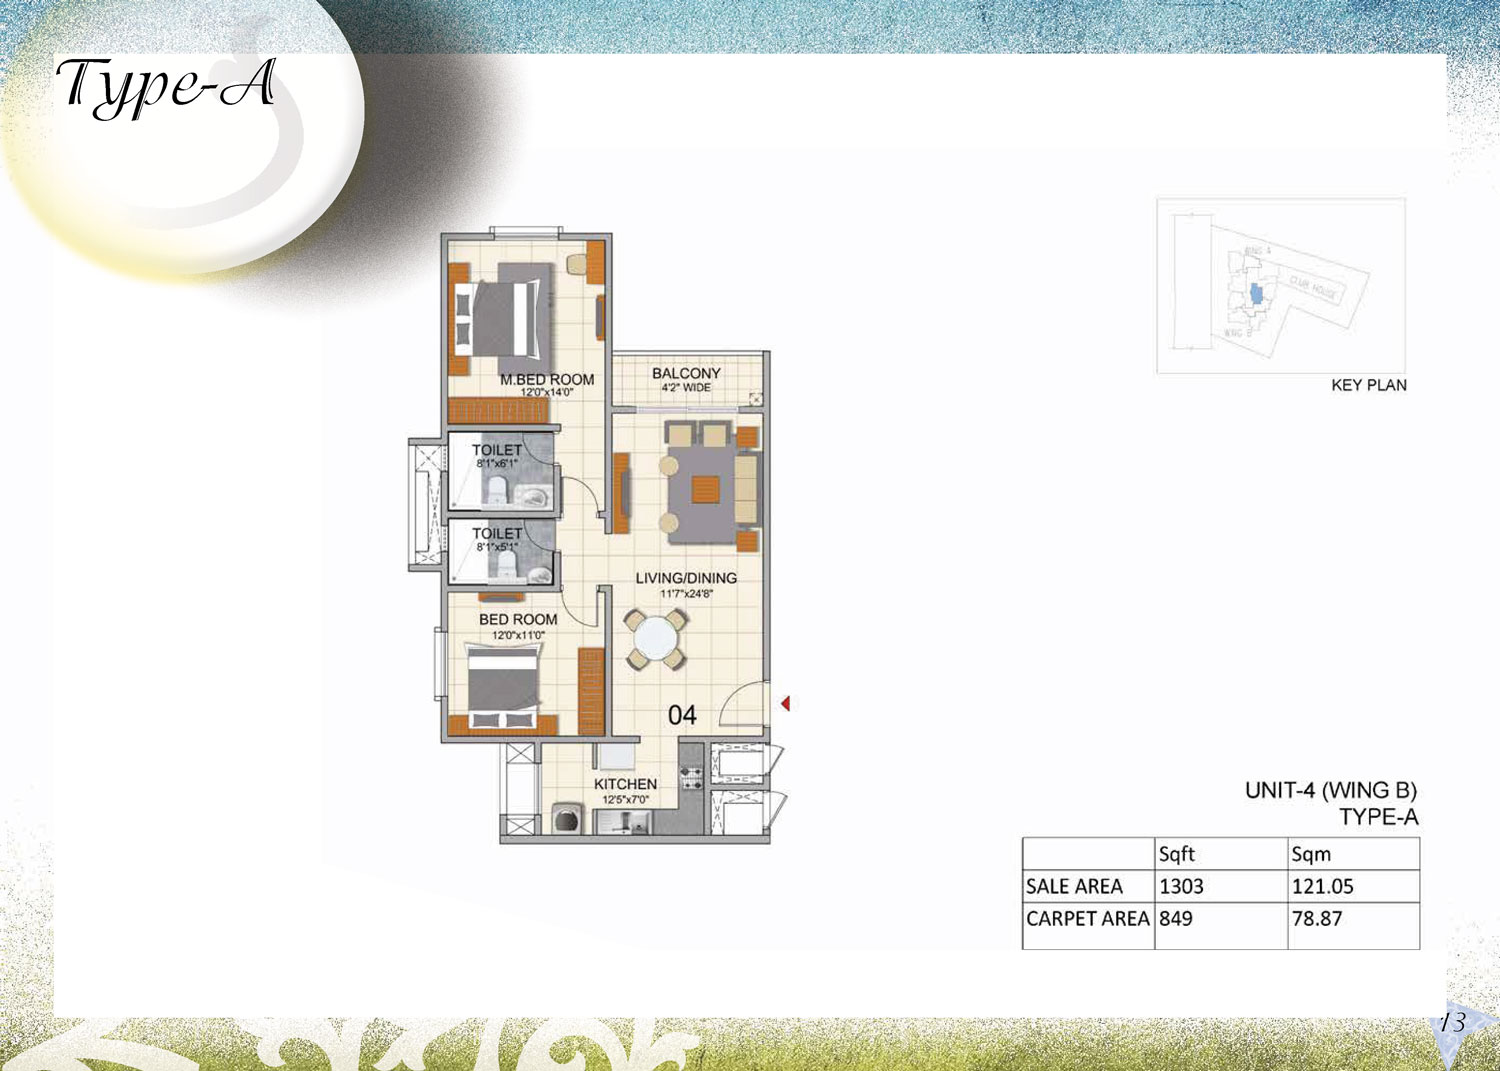 Type A - 1303 Sq Ft